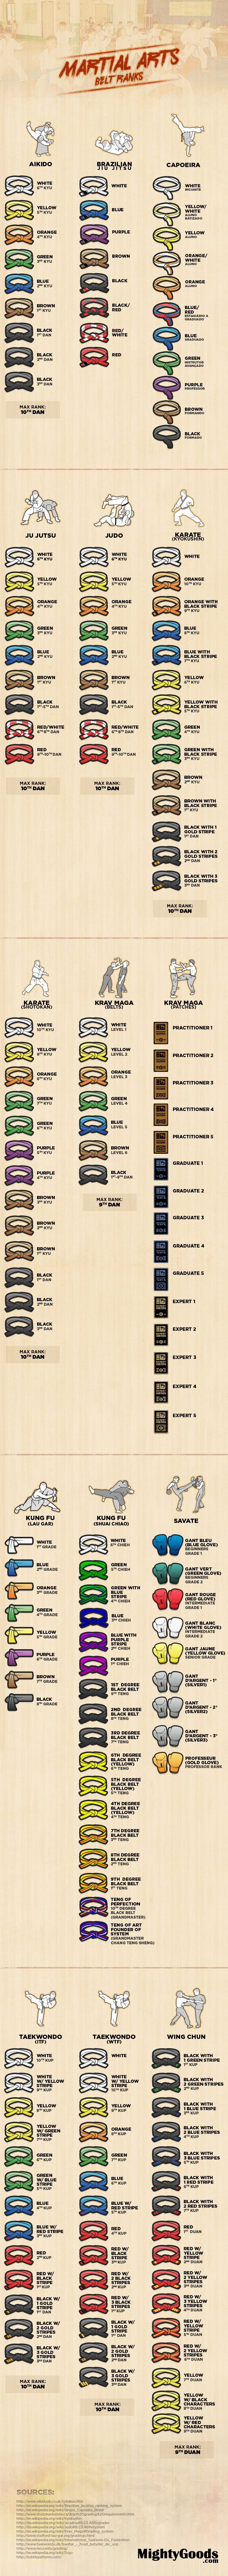 Martial arts belt ranks